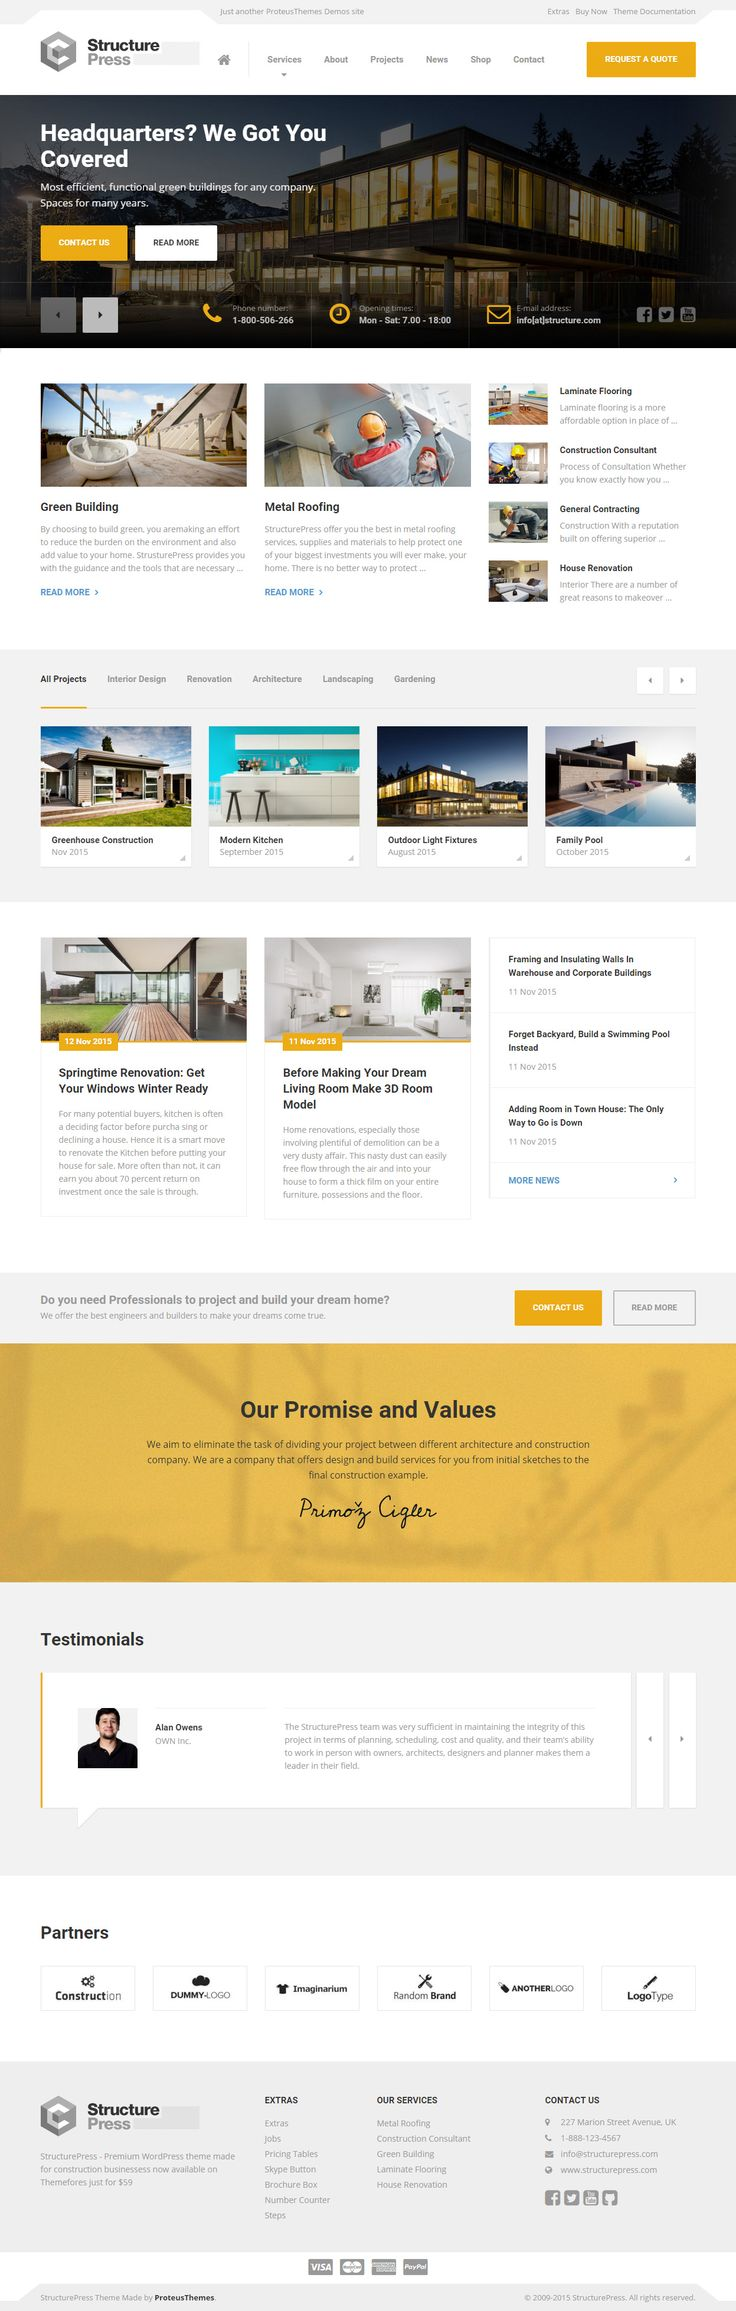 StructurePress is Premium full Responsive Retina #WordPress Construction Company #Theme. #Bootstrap 3. Visual Composer. WooCommerce. Free demo at: http://www.responsivemiracle.com/cms/structurepress-premium-responsive-construction-building-wordpress-theme/